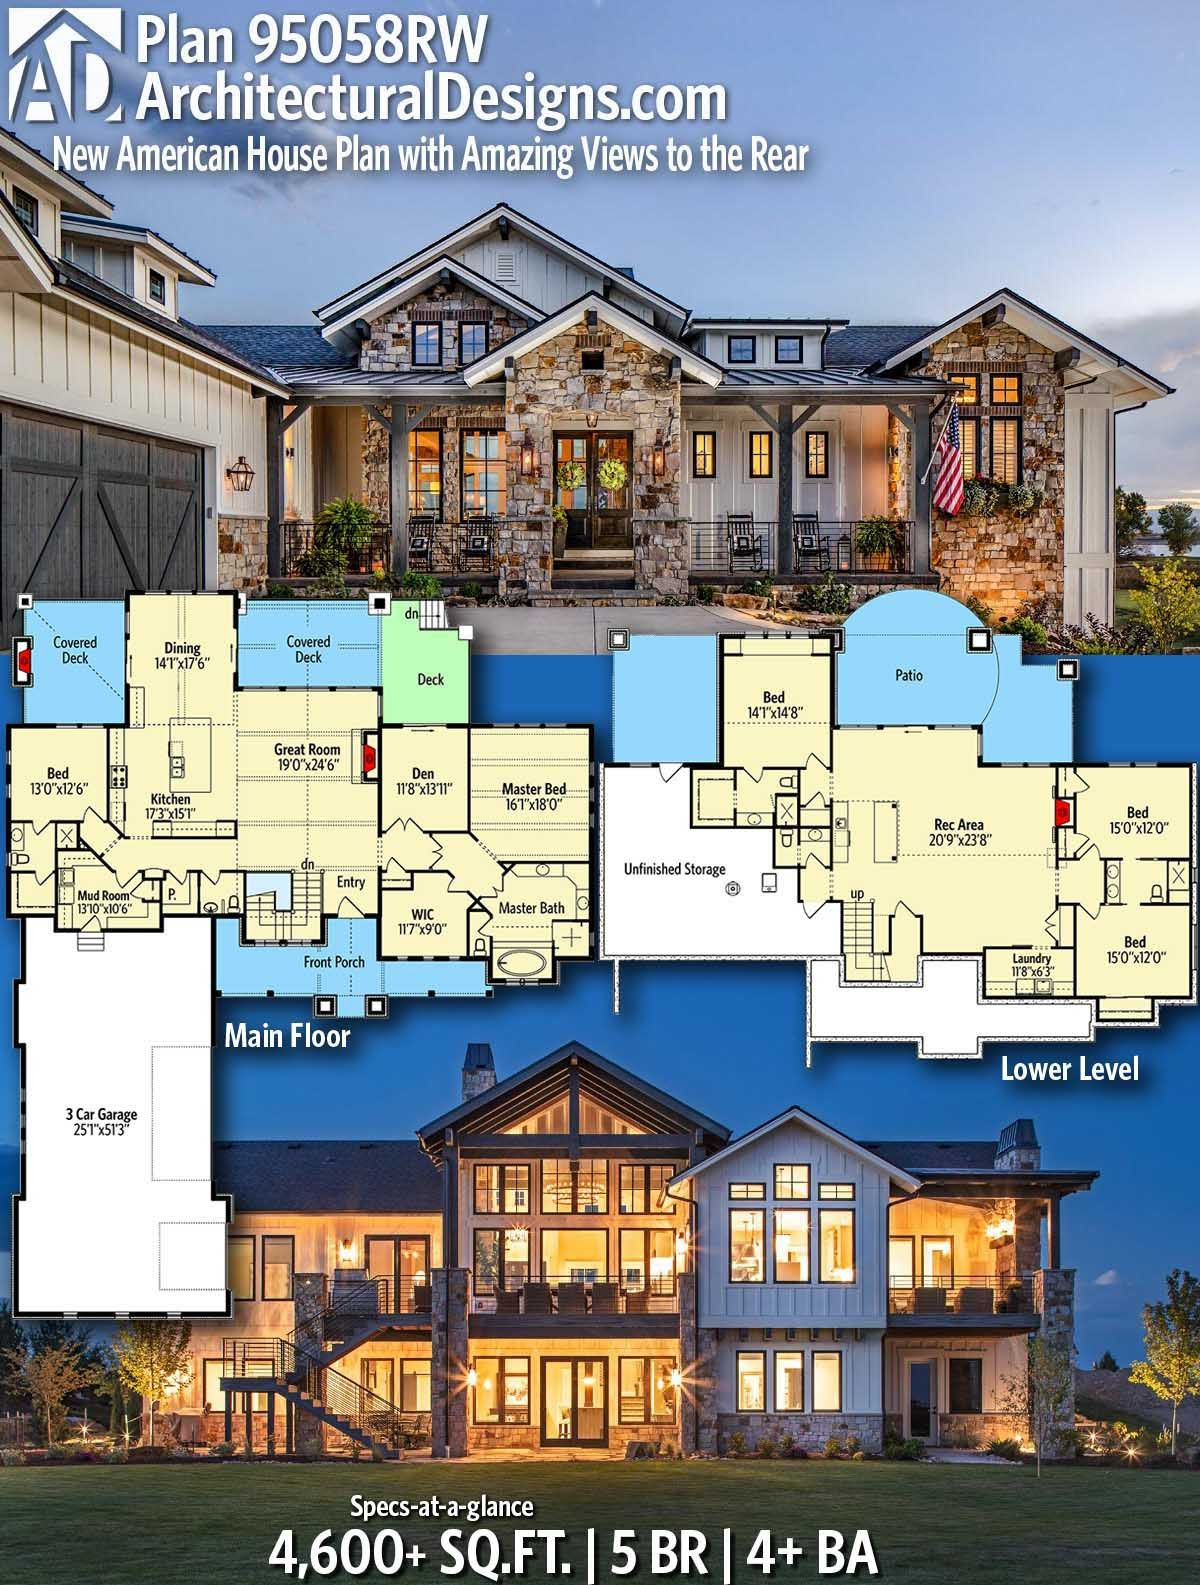 Modern American House Designs Luxury Plan Rw New American House Plan with Amazing Views to